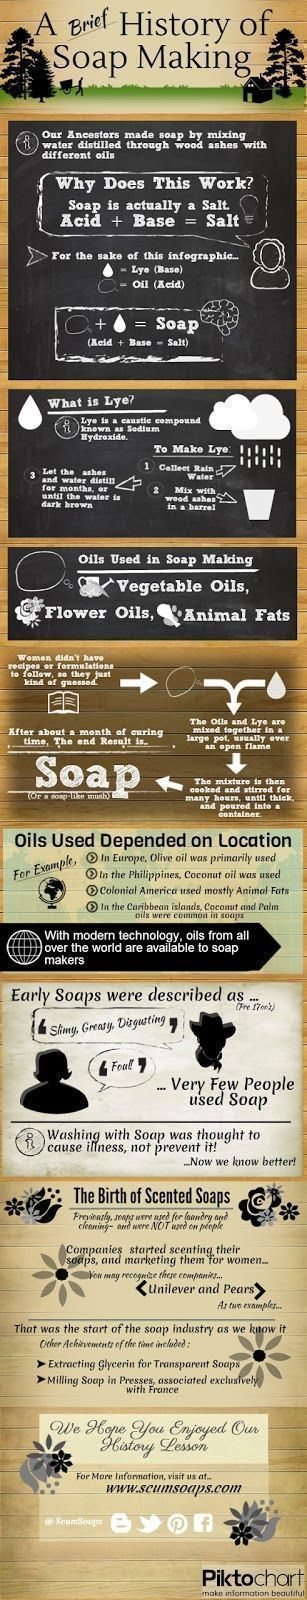 Soap Making, History of Soap Infographic - Scum Soaps www.scumsoaps.com #soapinfographic #soapmaking